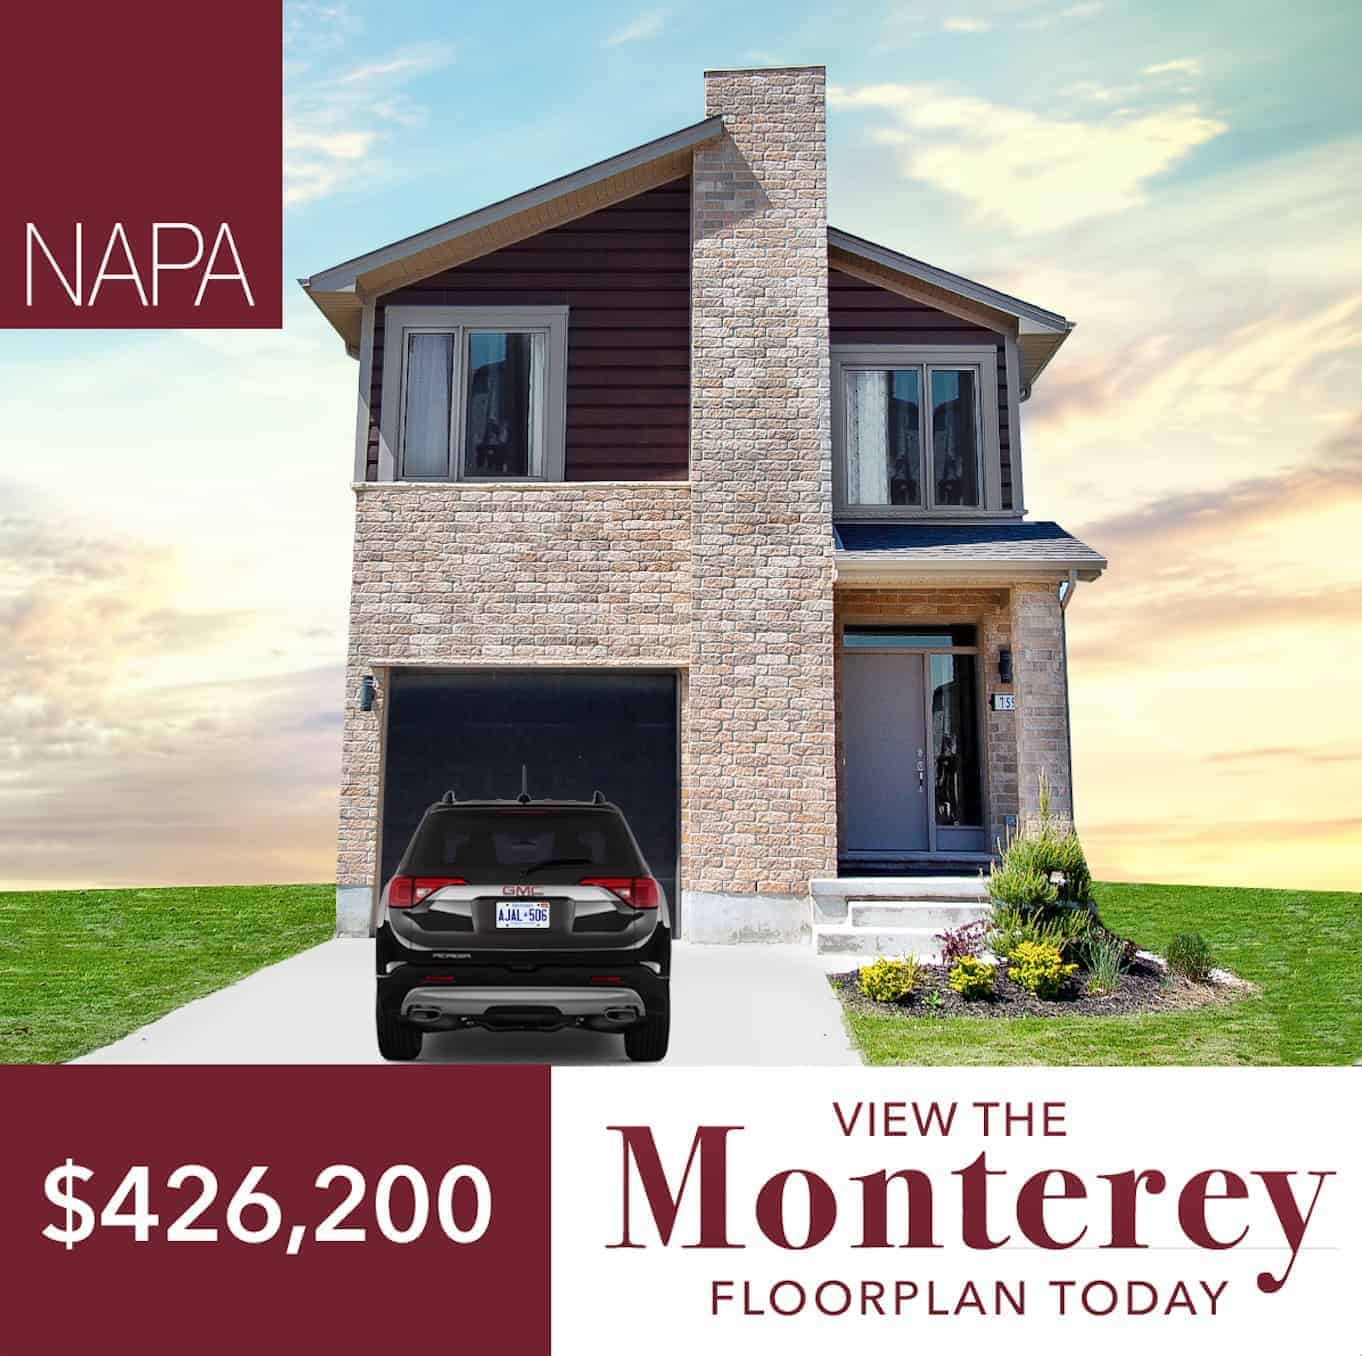 The Monterey Home in London Ontario for $426,200